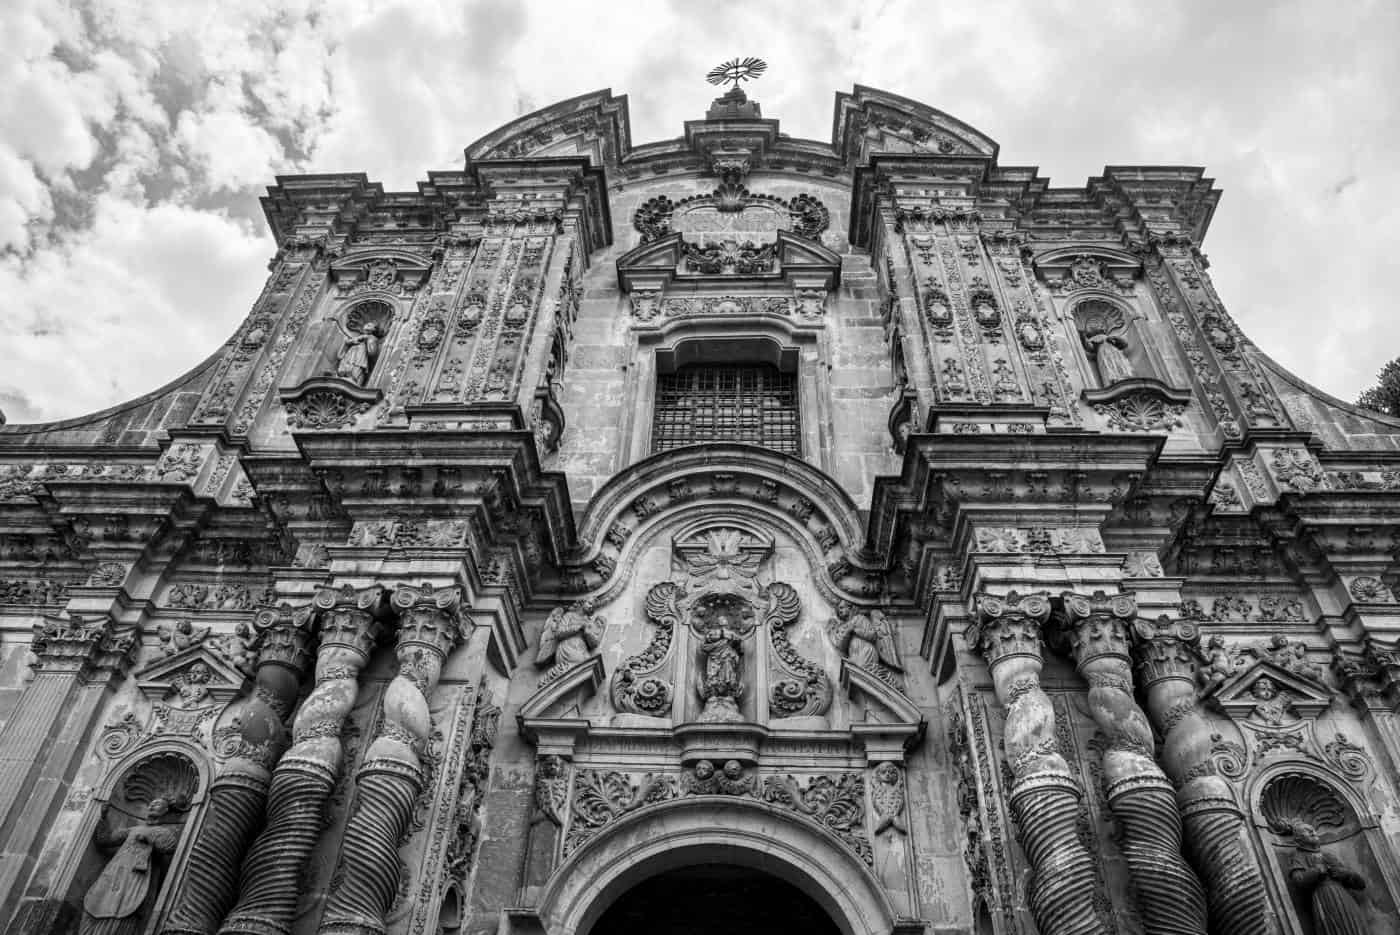 Iglesia de la compania de Jesus is the most famous church in Quito (Ecuador) c/o Deposit Photos